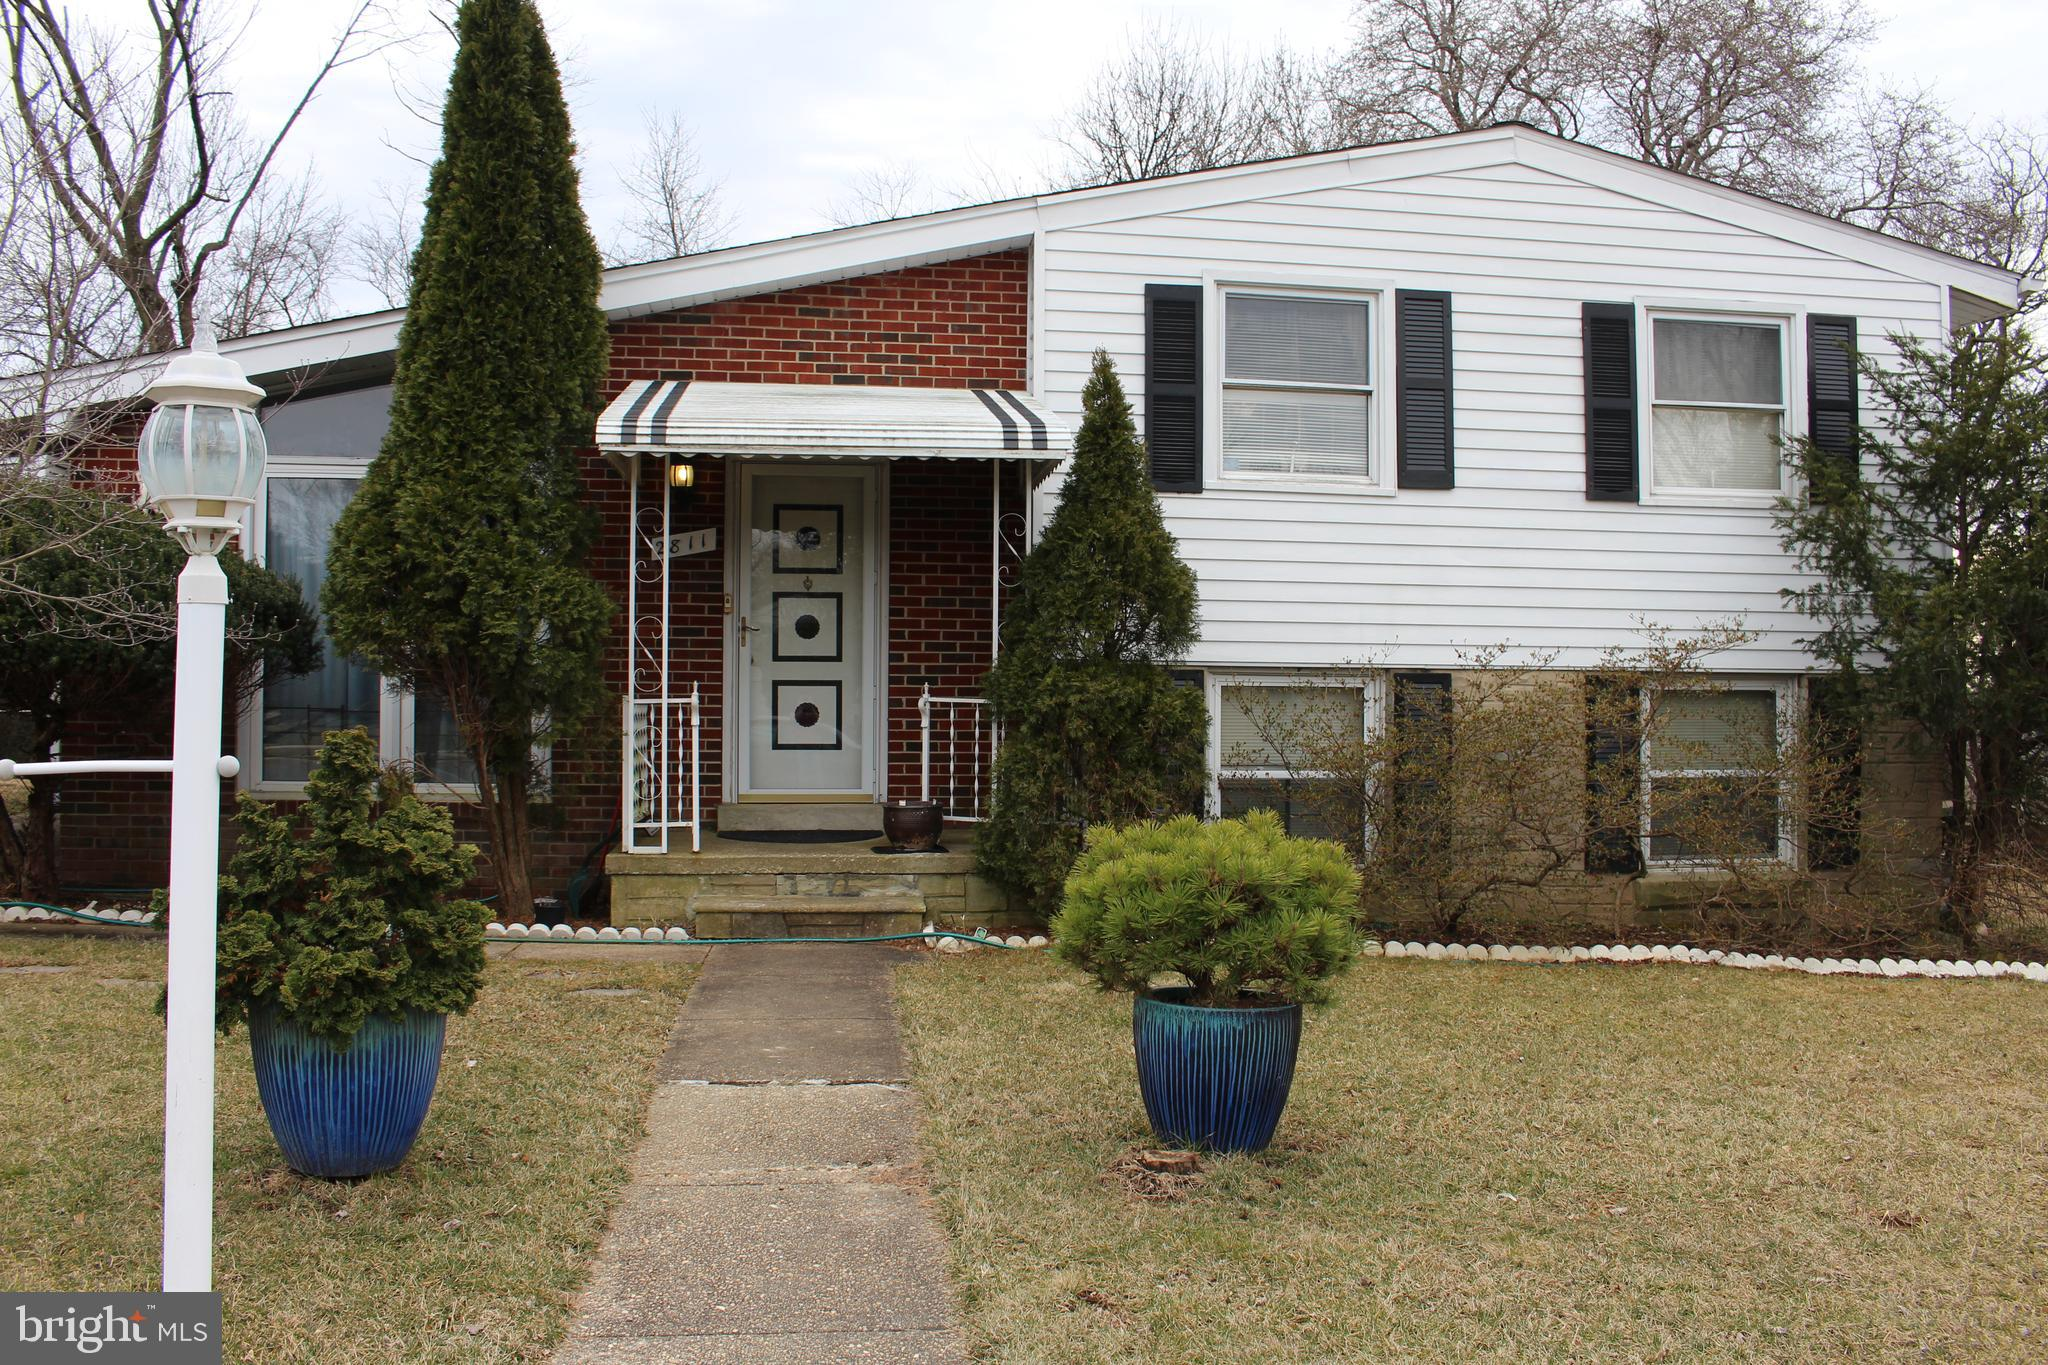 Investors take notice! Priced to sell fast!  Easy renovation in a great neighborhood. Solid bones. SOLD-AS-IS. Cash or conventional.